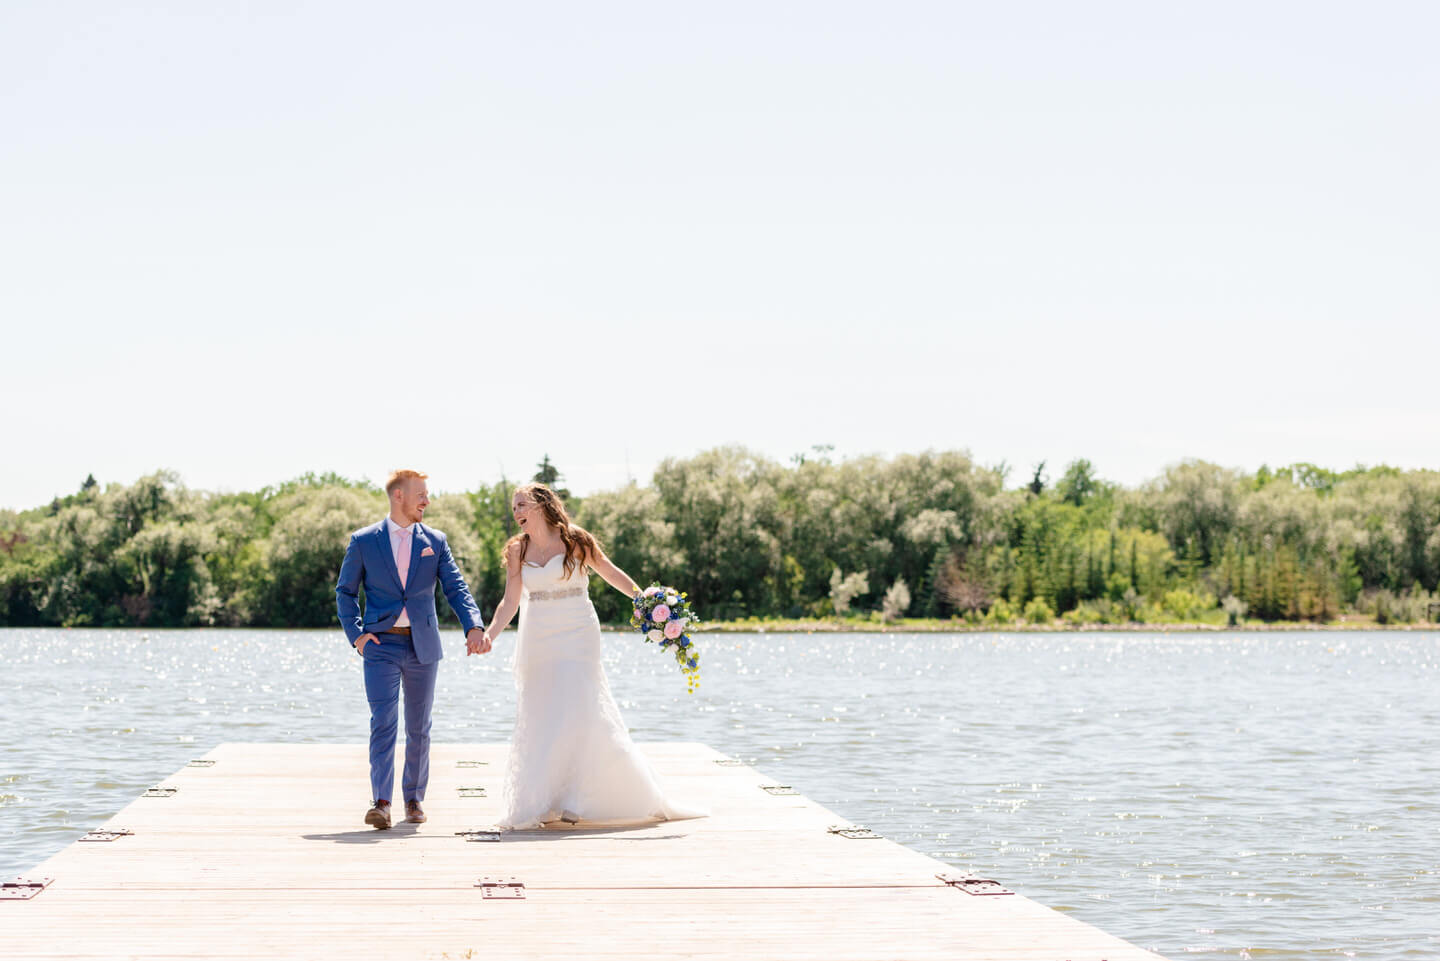 Bride & Groom at boat launch on Wascana Lake after wedding